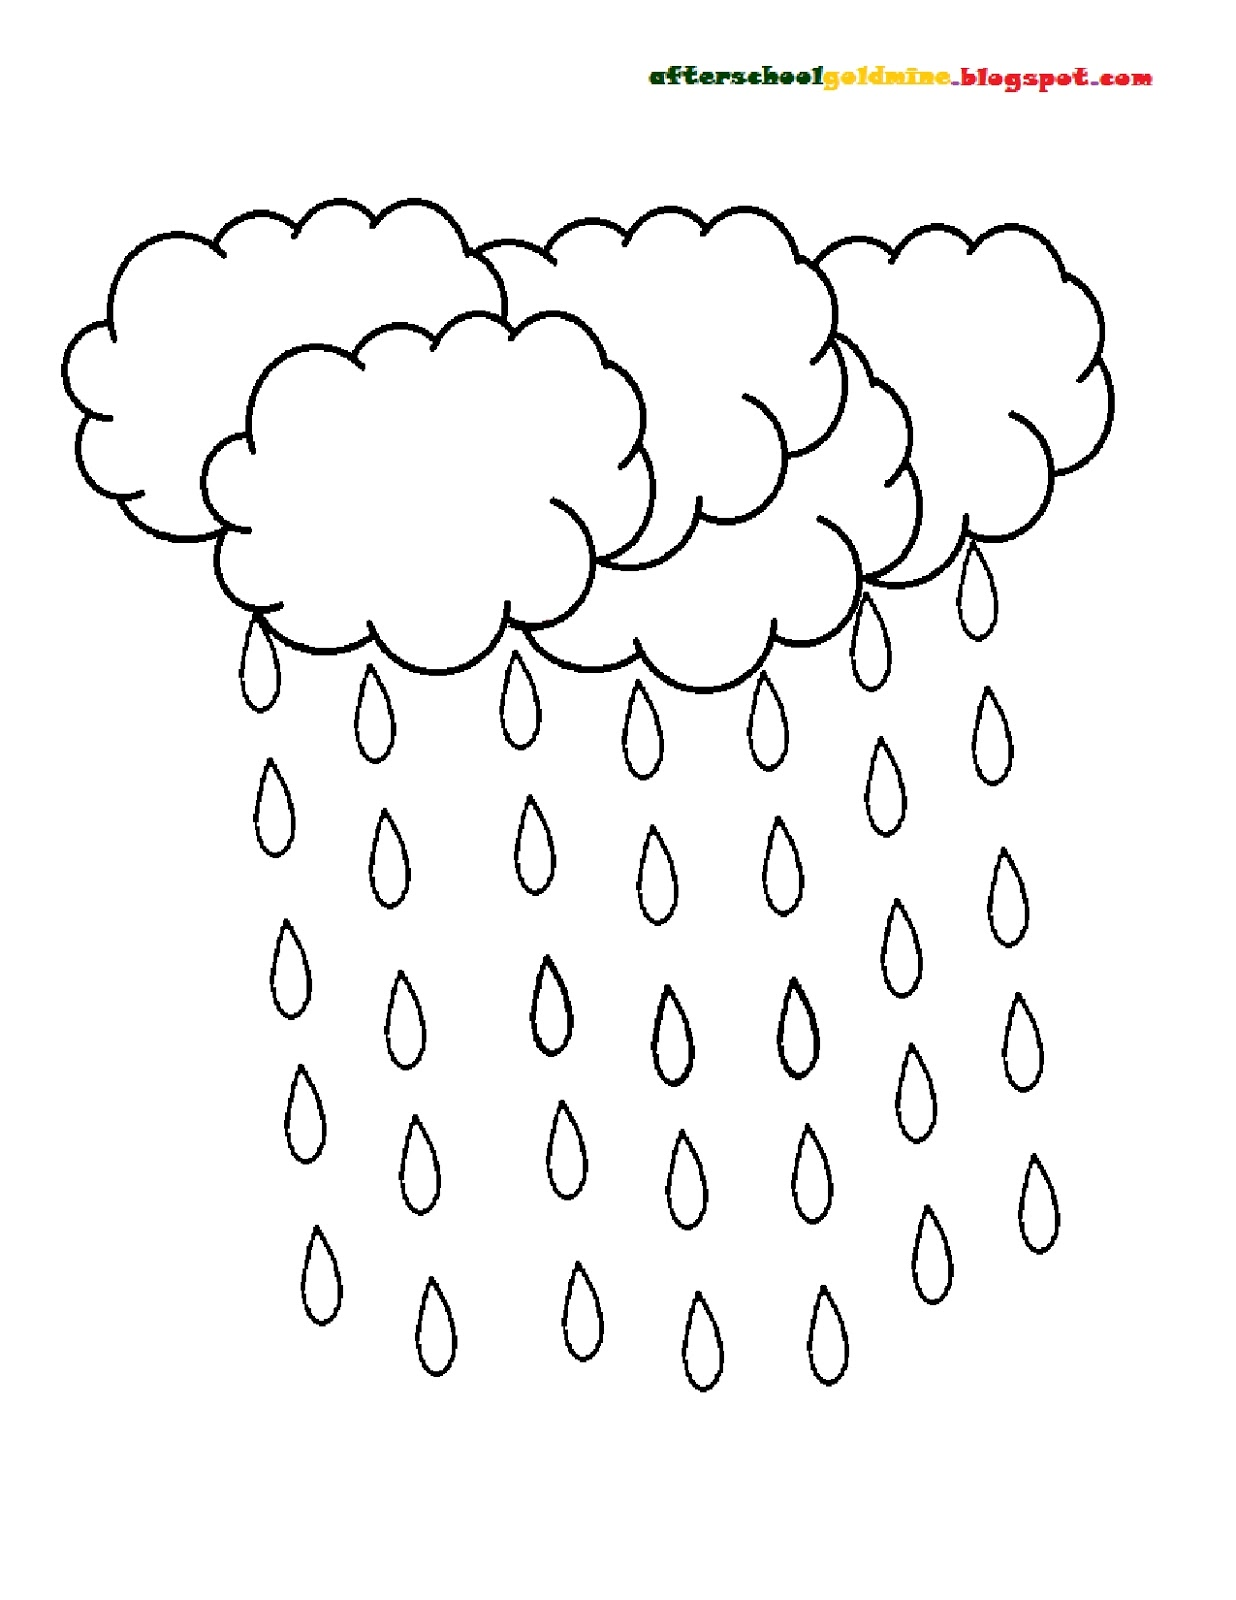 raindrop coloring pages coloring pages of raindrops coloring home pages coloring raindrop